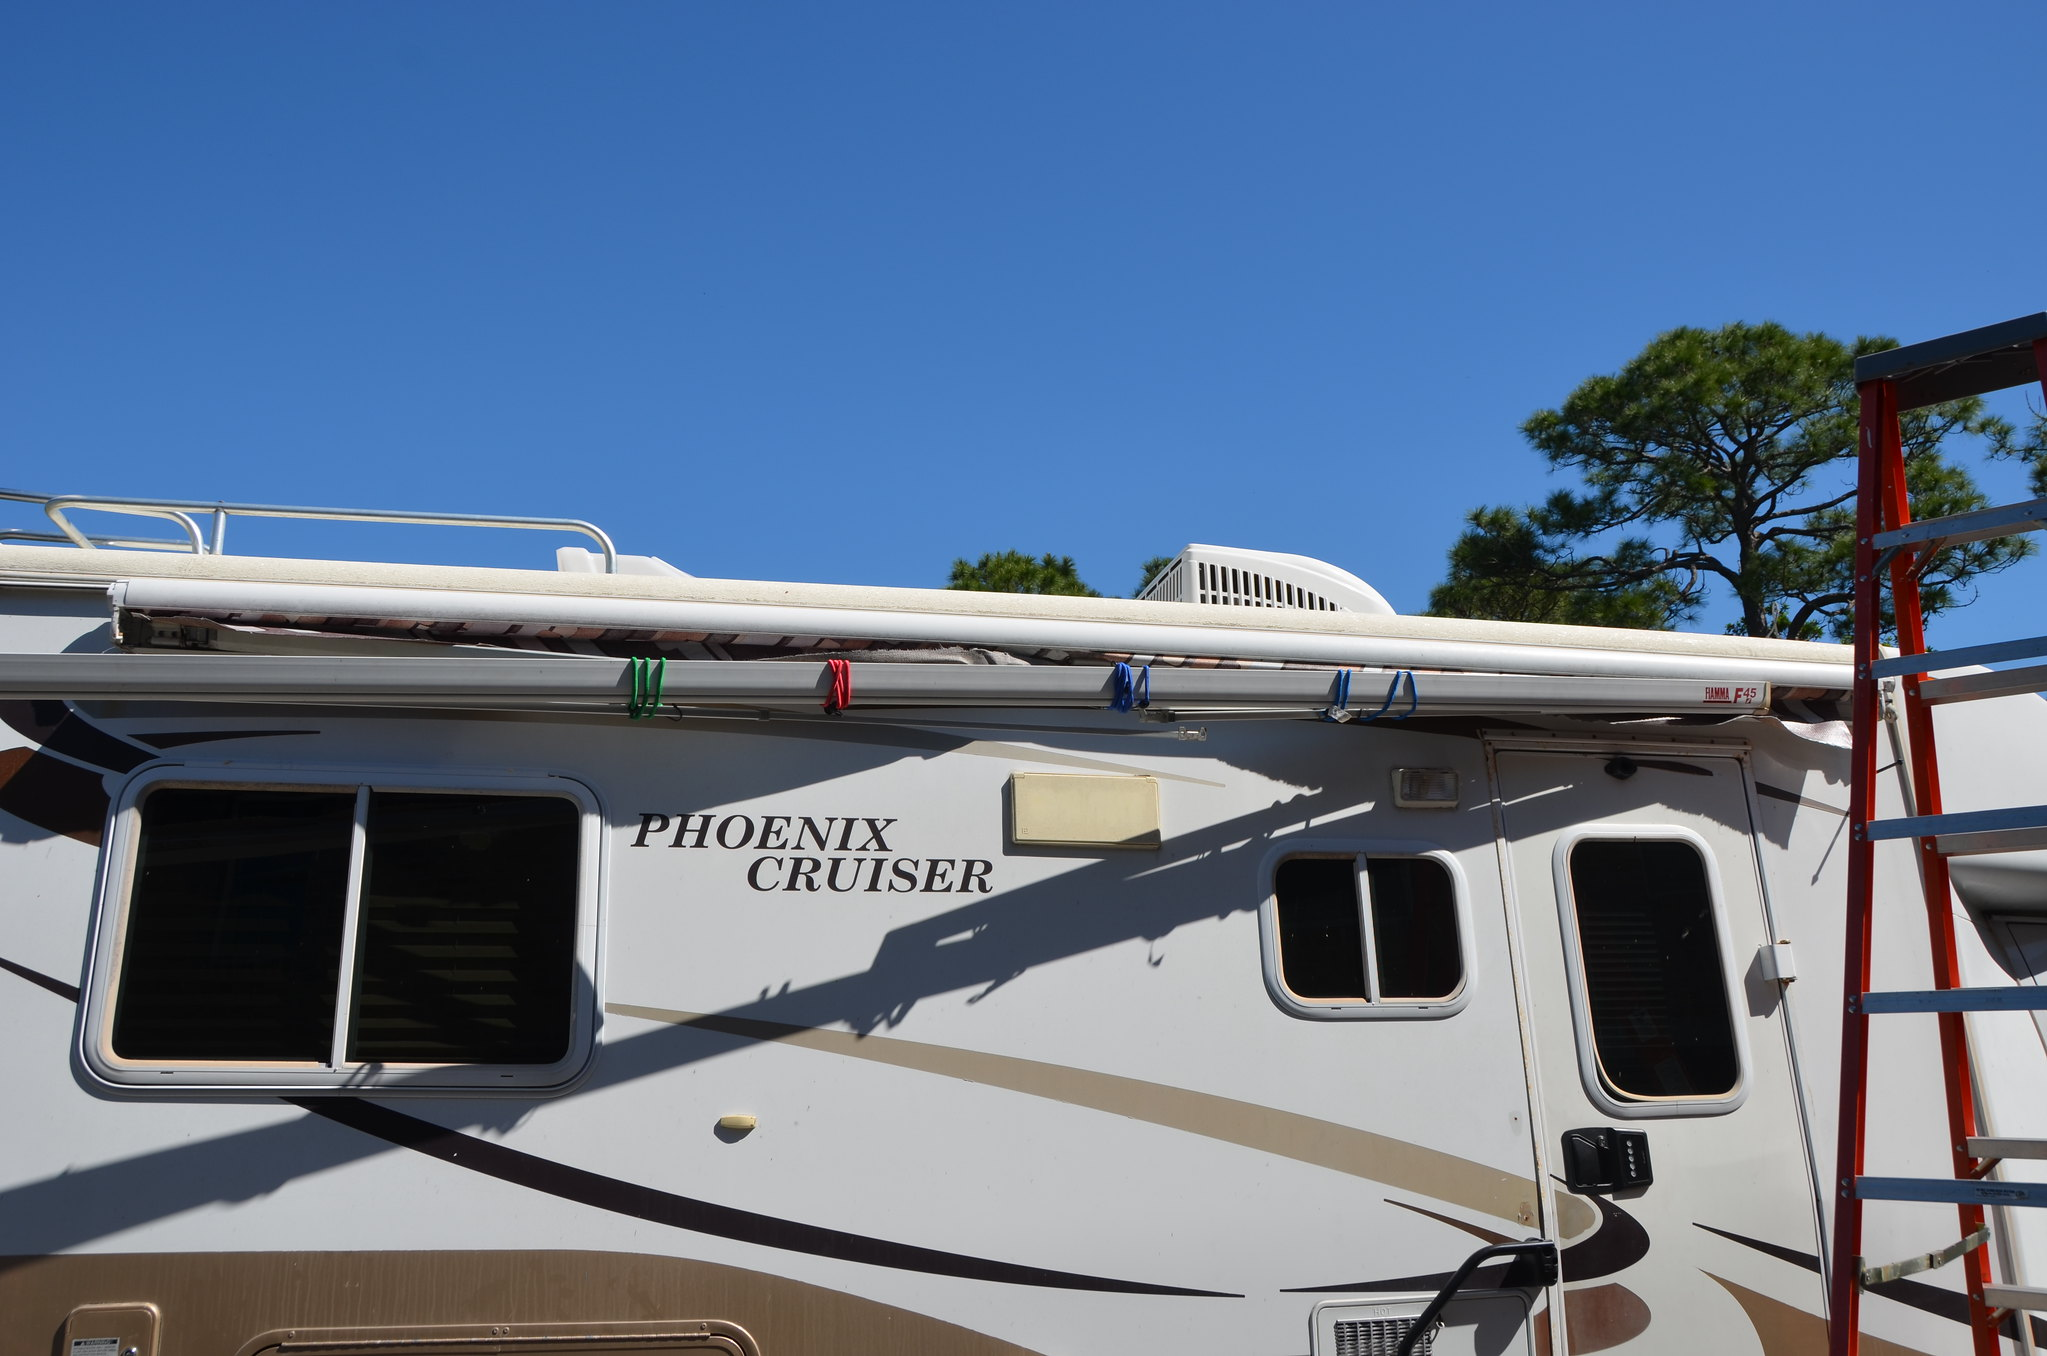 Replacement Of Fiamma 45i Awning